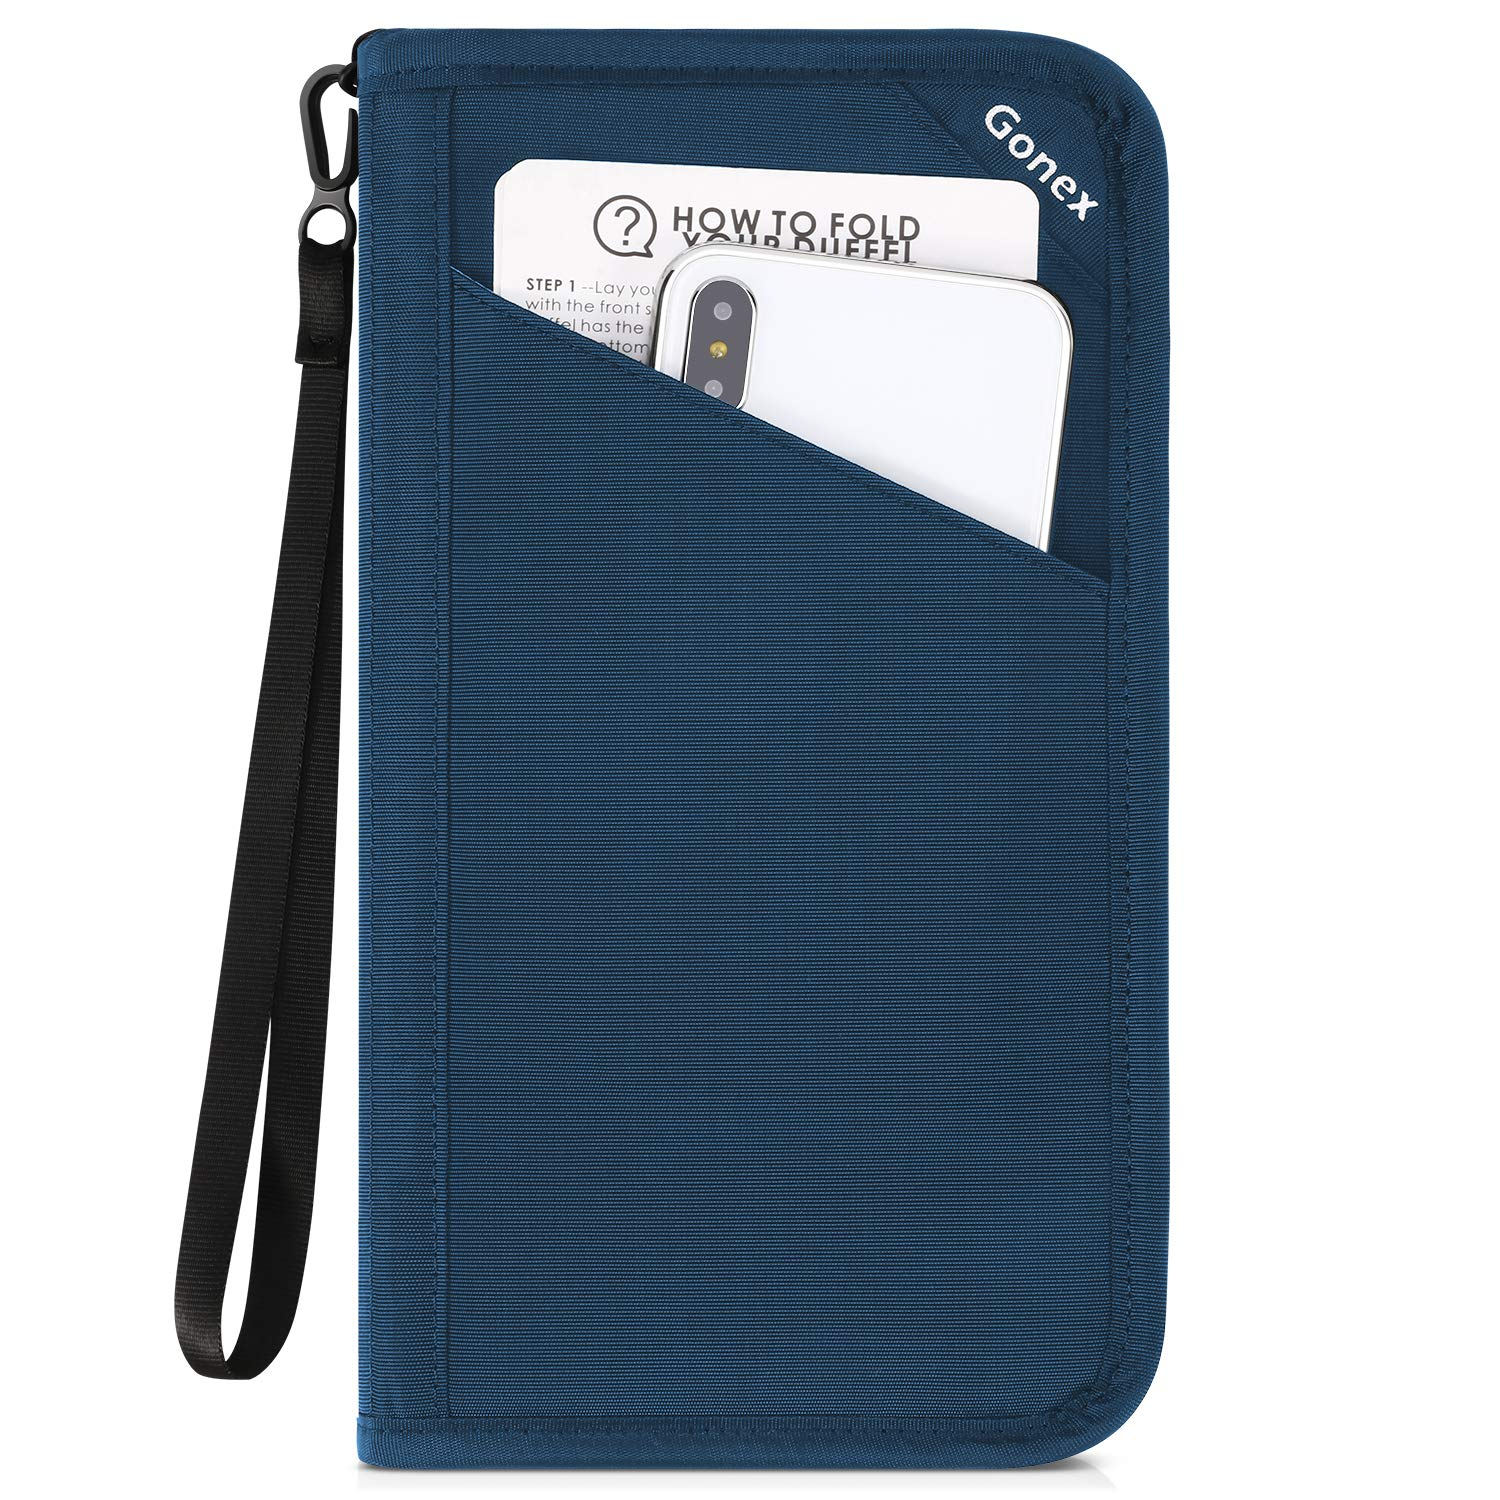 Gonex Passport holder RFID Blocking Travel Wallet with Removable Wristlet Strap for Men& Women, Water-Repellent Pale blue